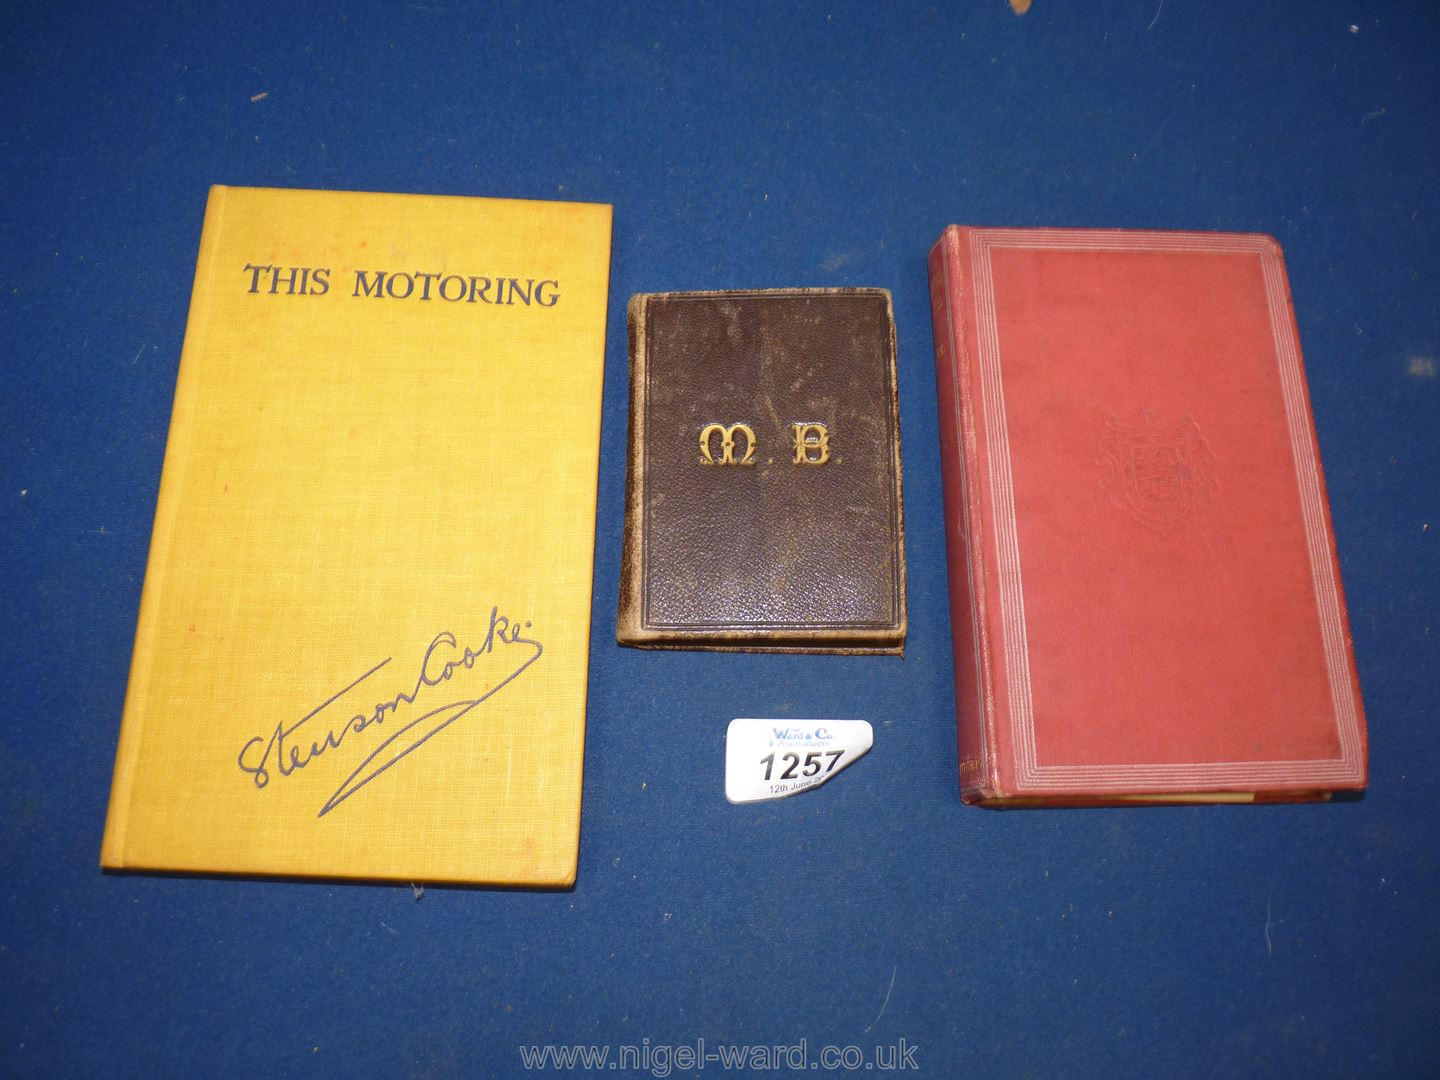 A leather clad and gold initialled folding map of Herefordshire, - Image 2 of 2